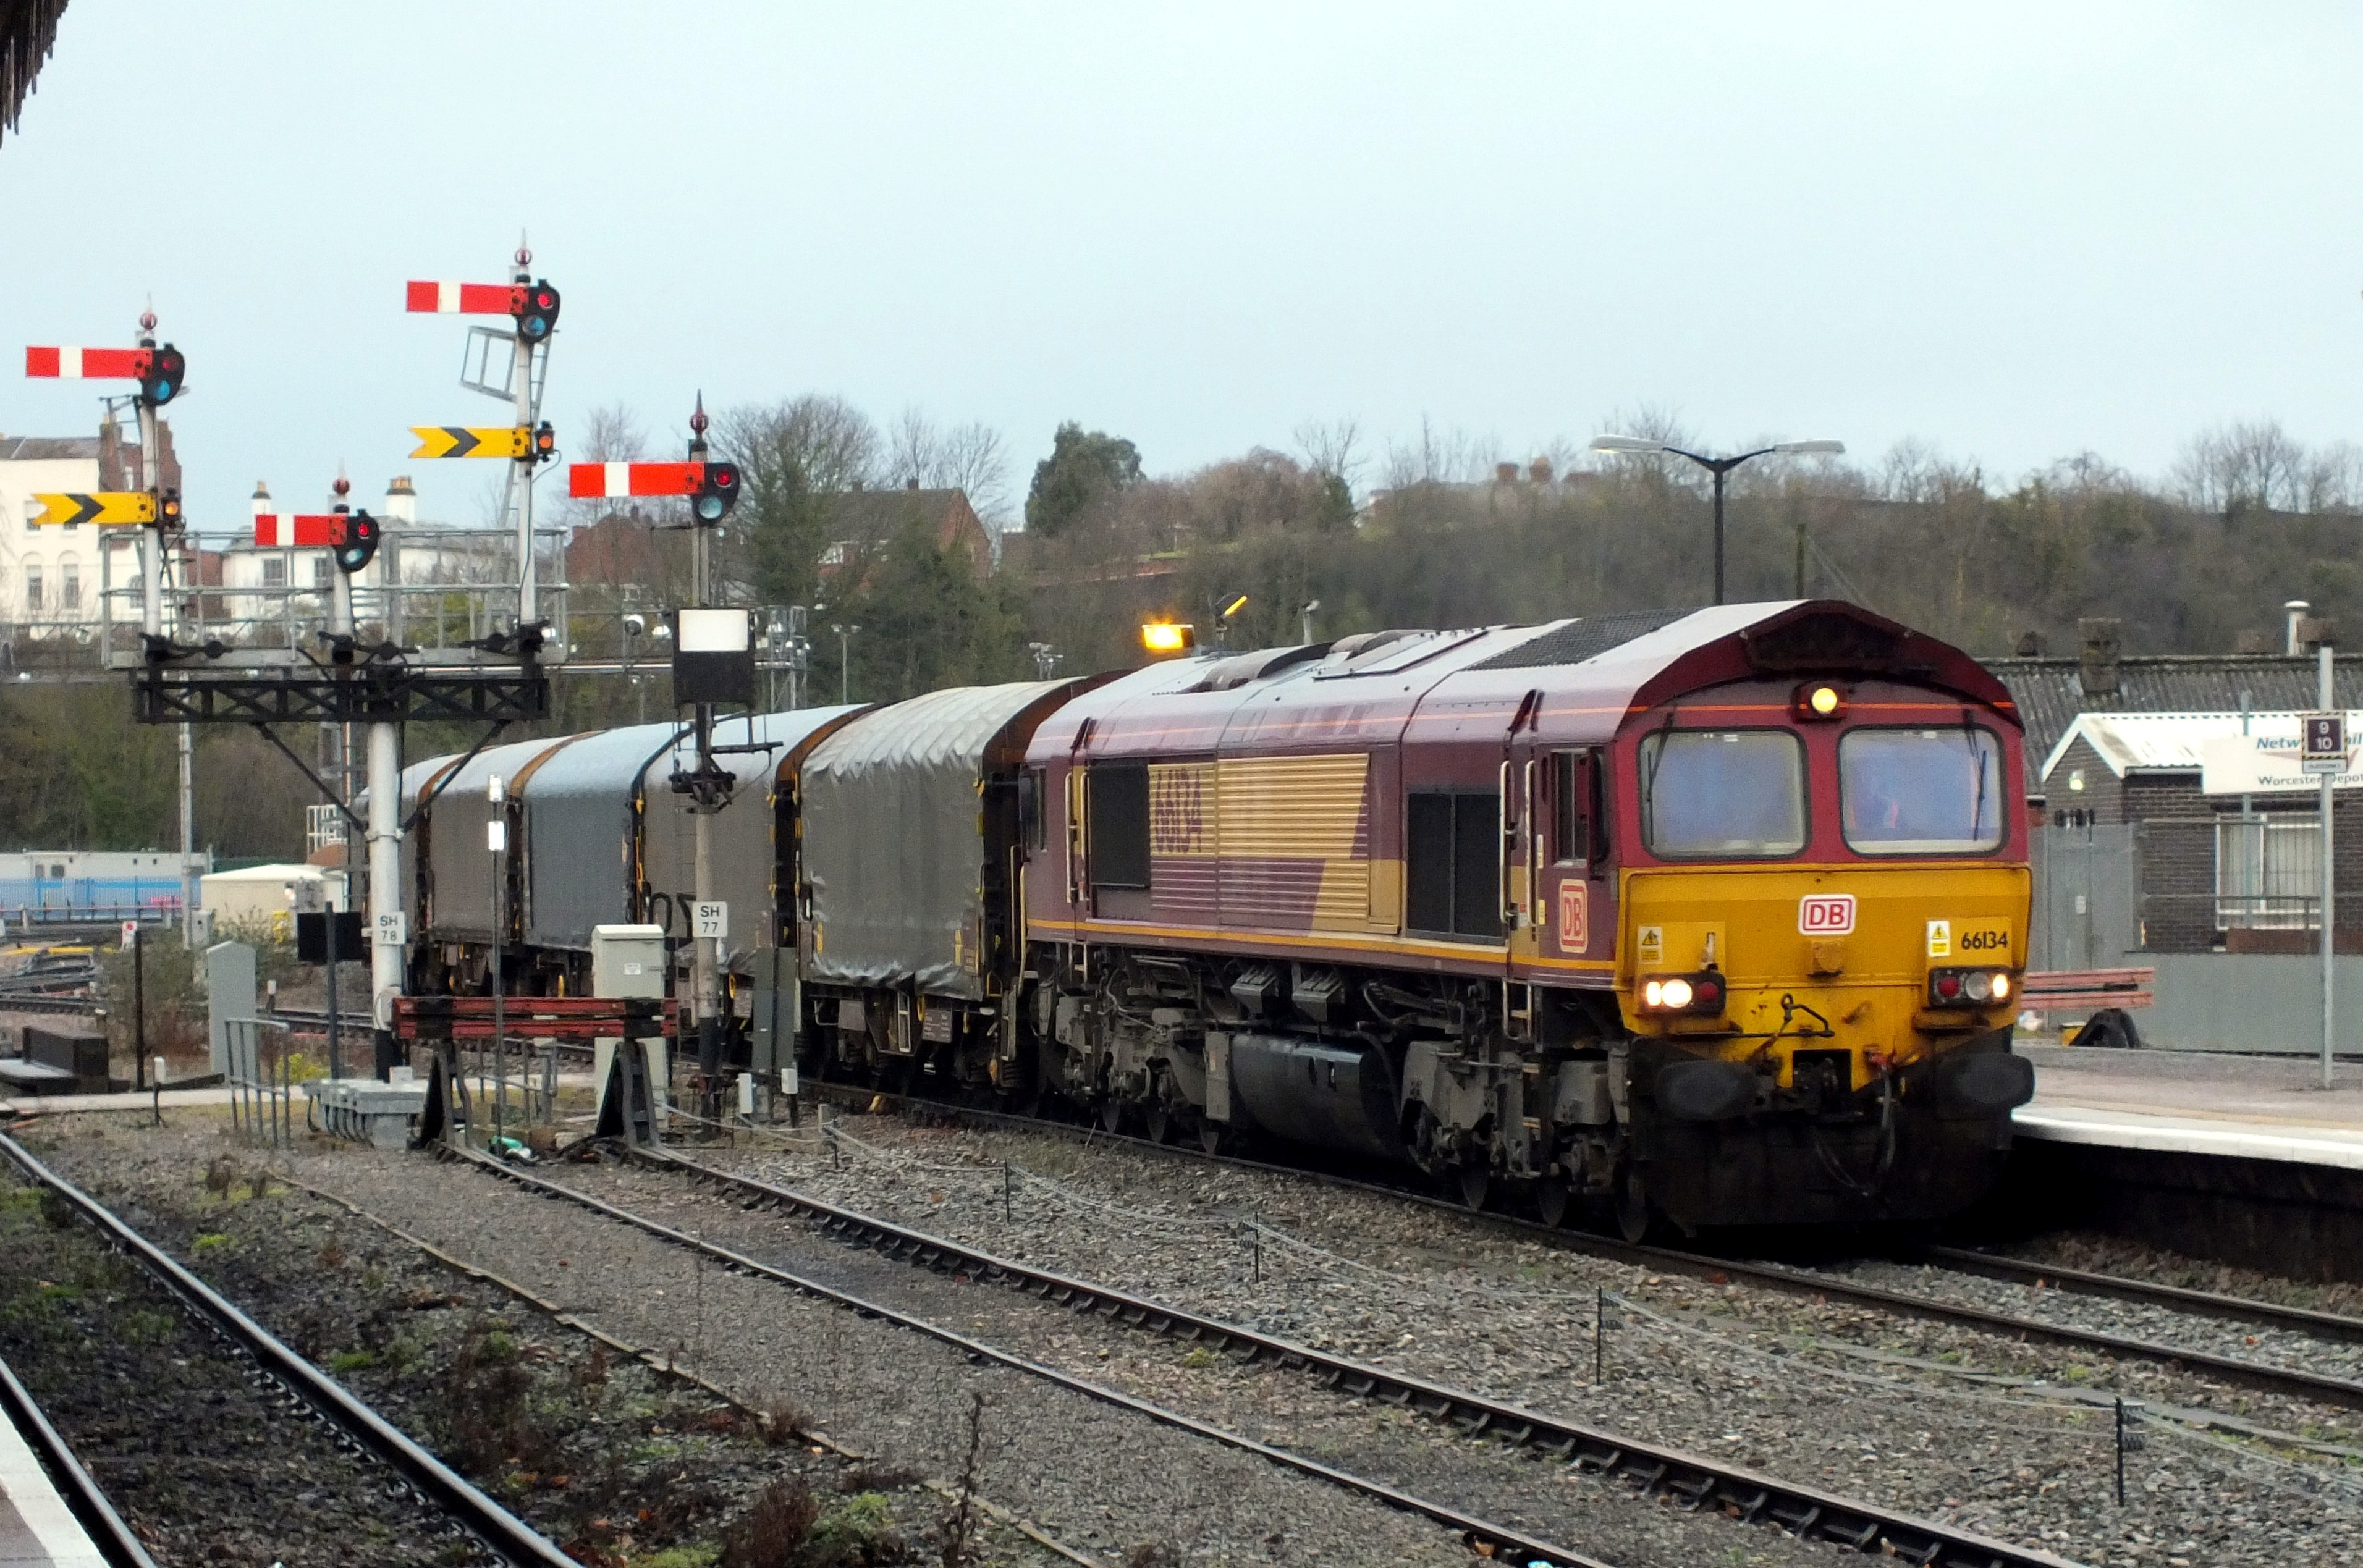 05 January 2018 Shrub Hill 004.jpg